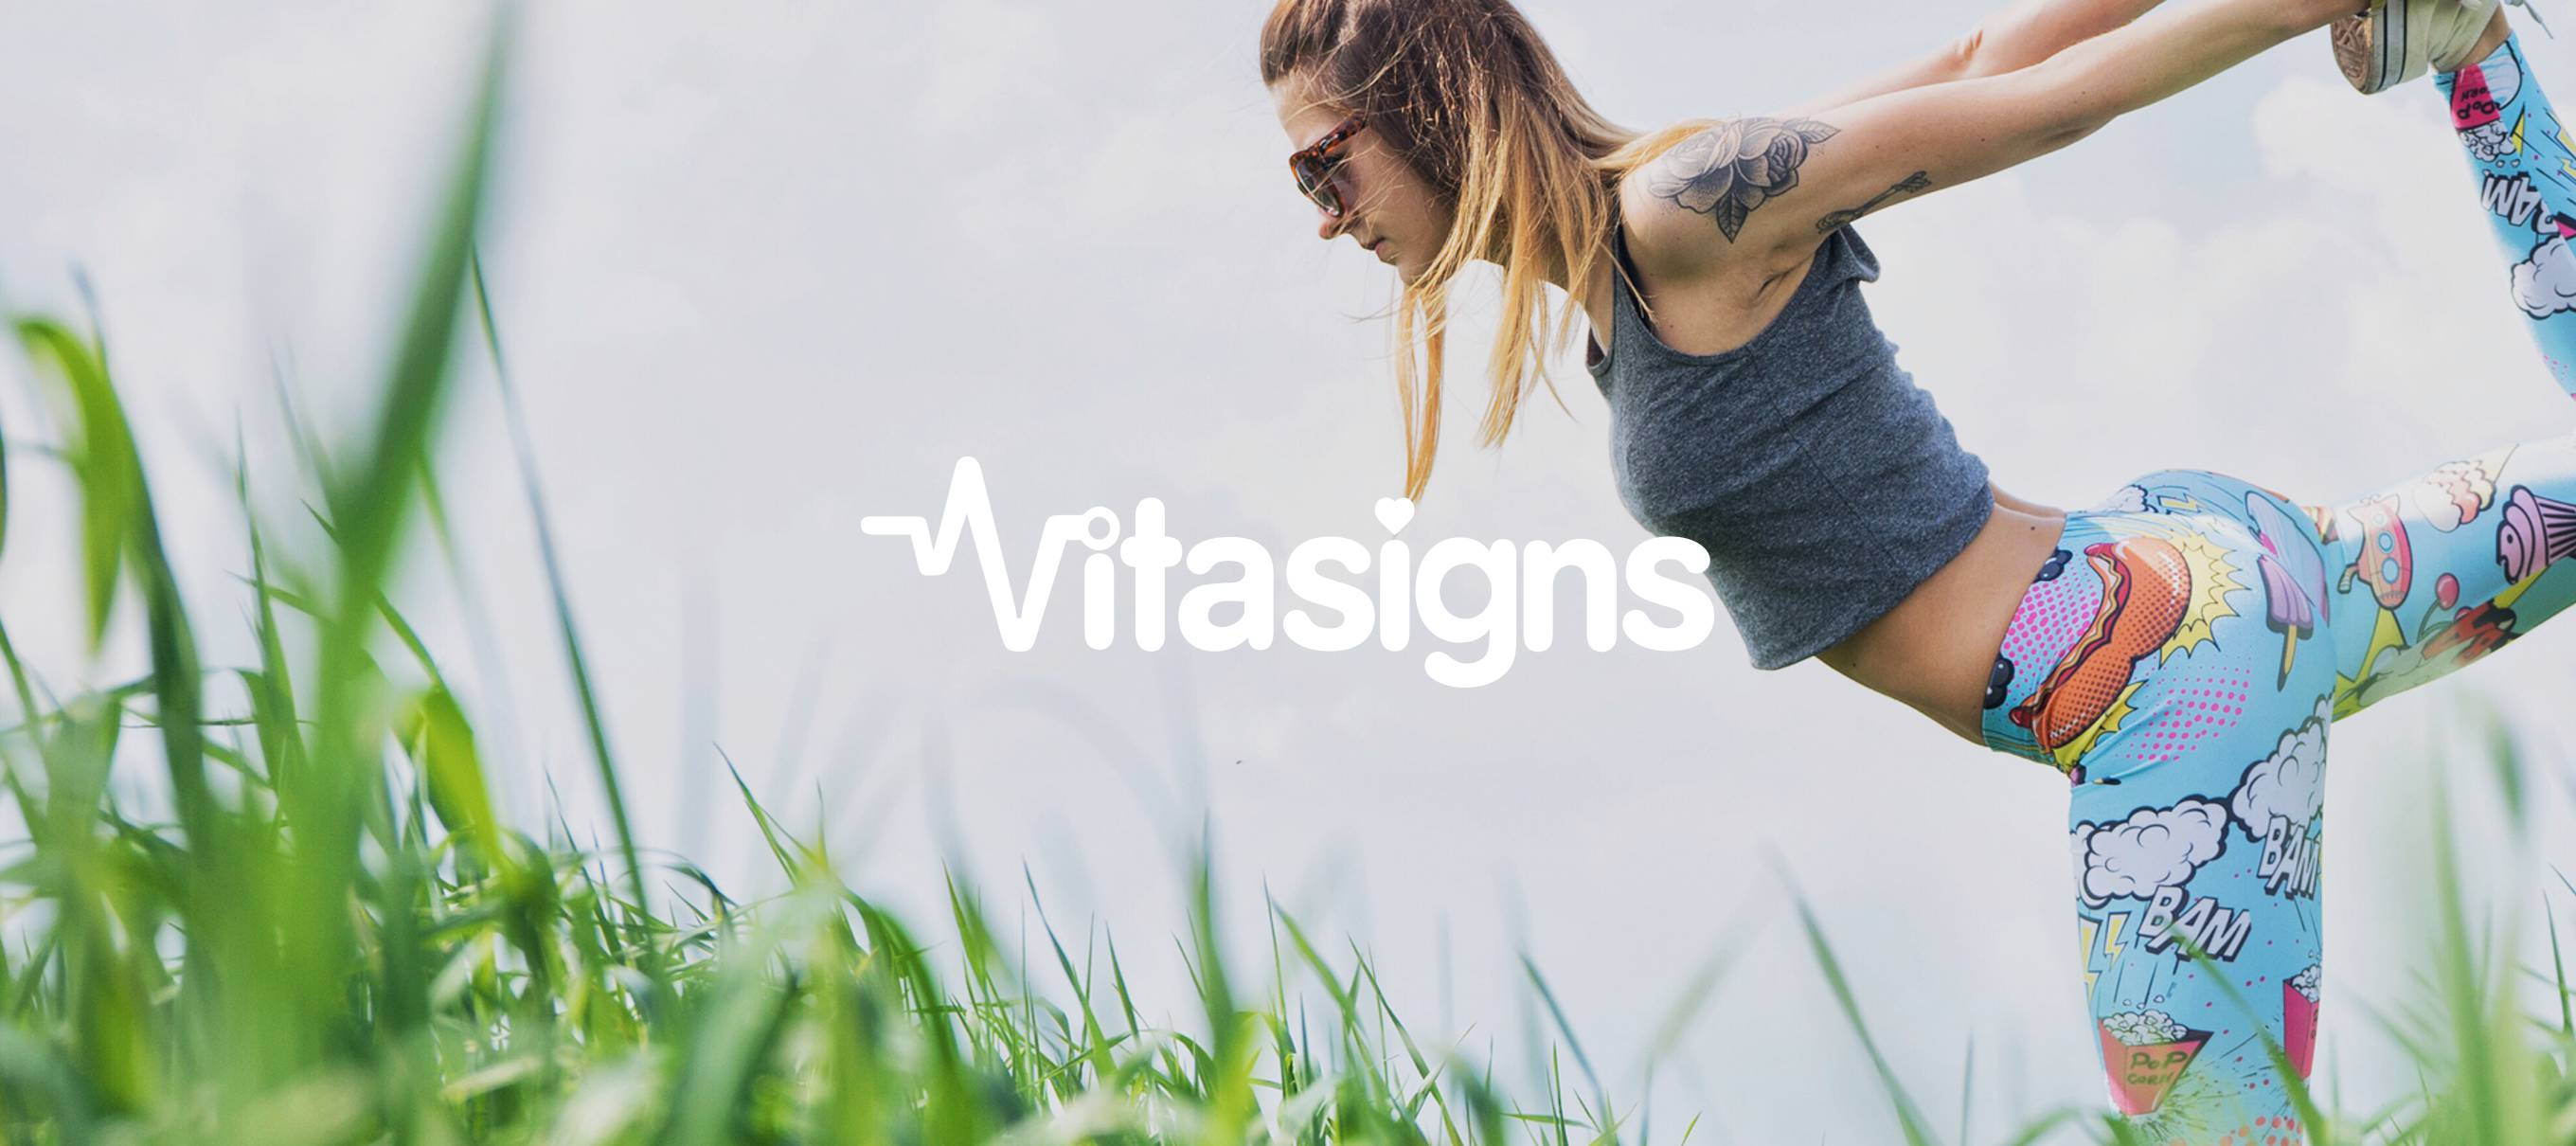 Vitasigns by vitagoods